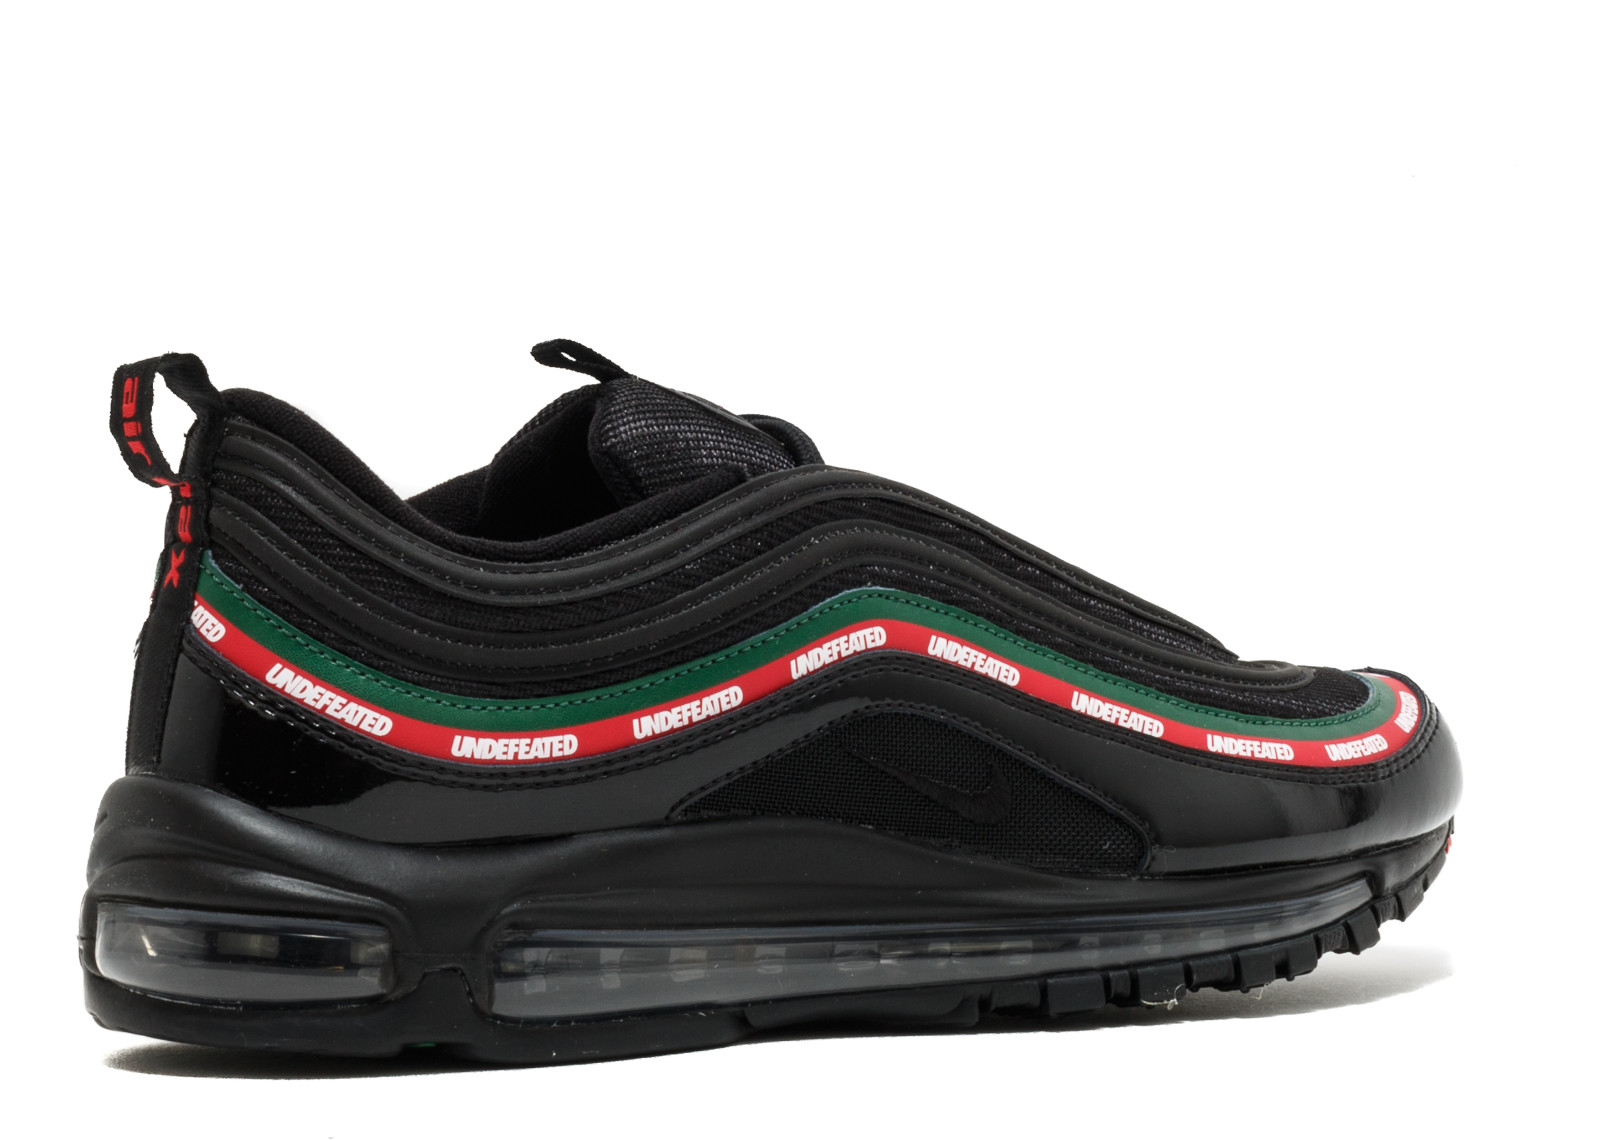 Details about Nike Air Max 97 Og Undftd 'Undefeated' Aj1986 001 Size 10.5